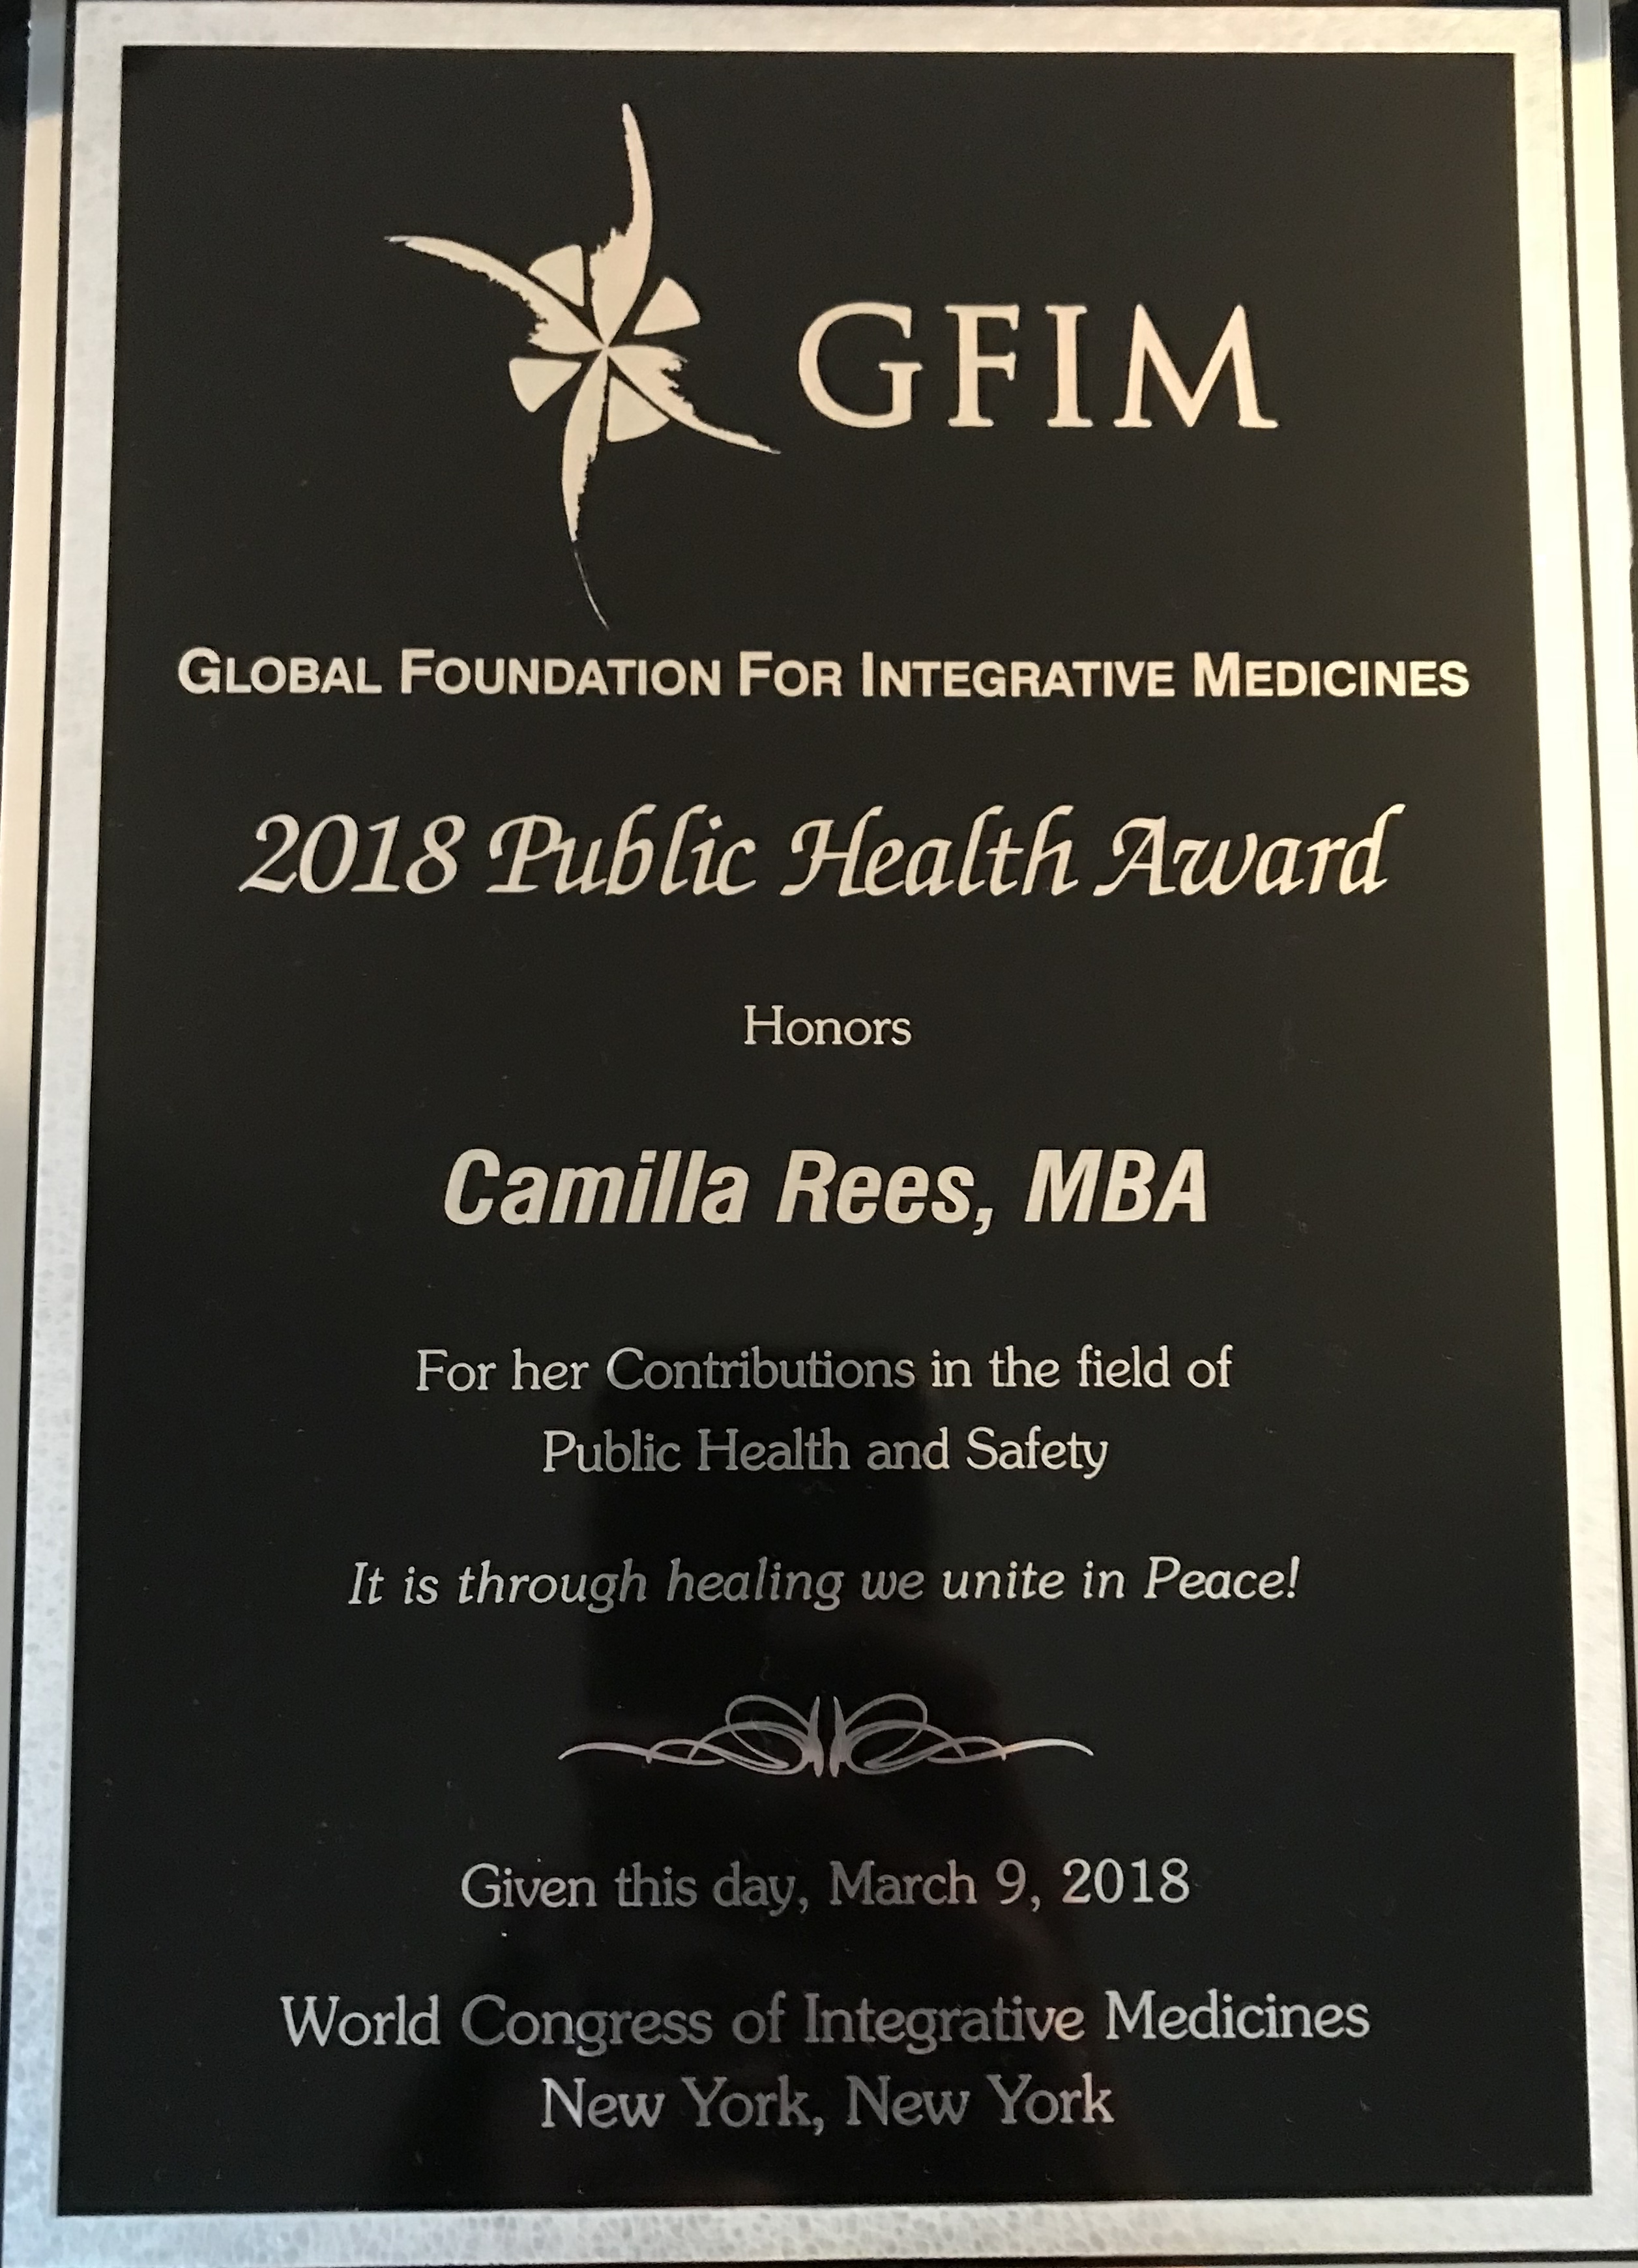 ElectromagneticHealth.org Founder Camilla Rees Receives Public Health Award, Smombie Gate | 5G | EMF